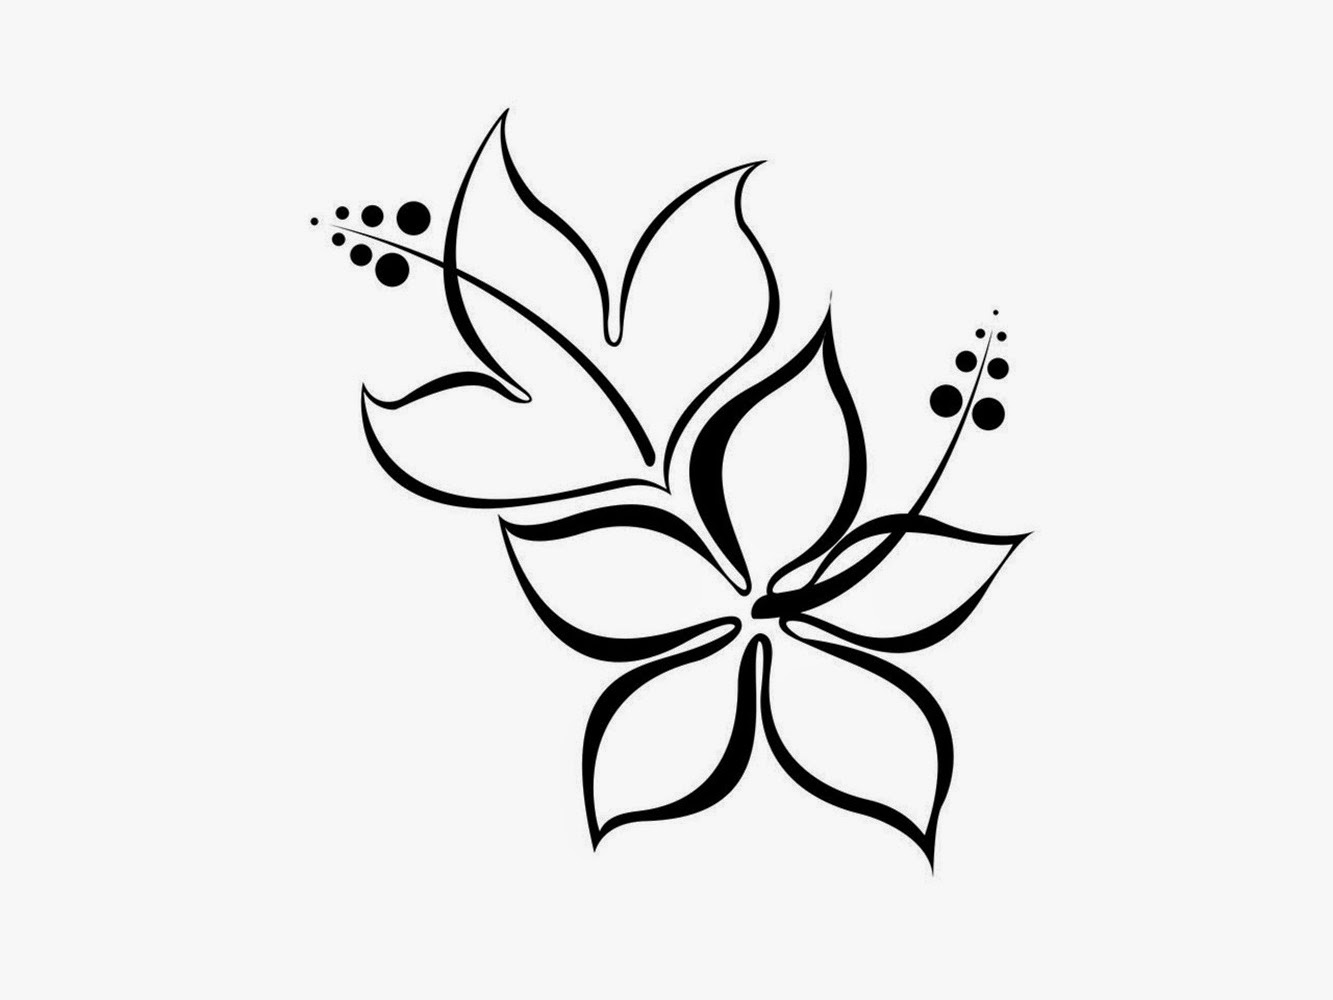 Flowers black and white drawing at getdrawings free for 1333x1000 for those interested in getting a flower tattoo a gladiolus mightylinksfo